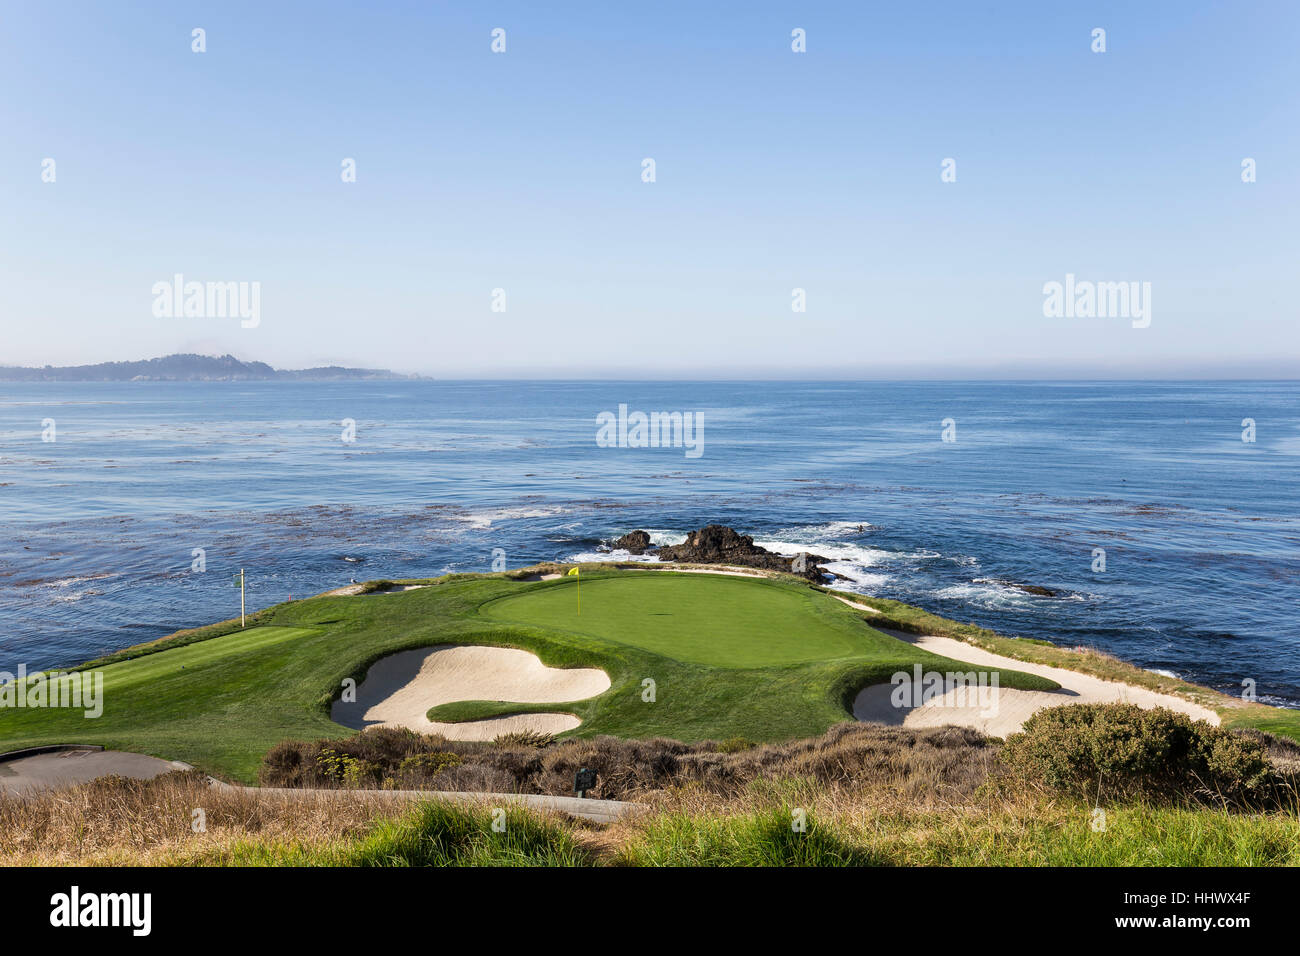 A view of Pebble Beach golf  course, Monterey, California, USA - Stock Image